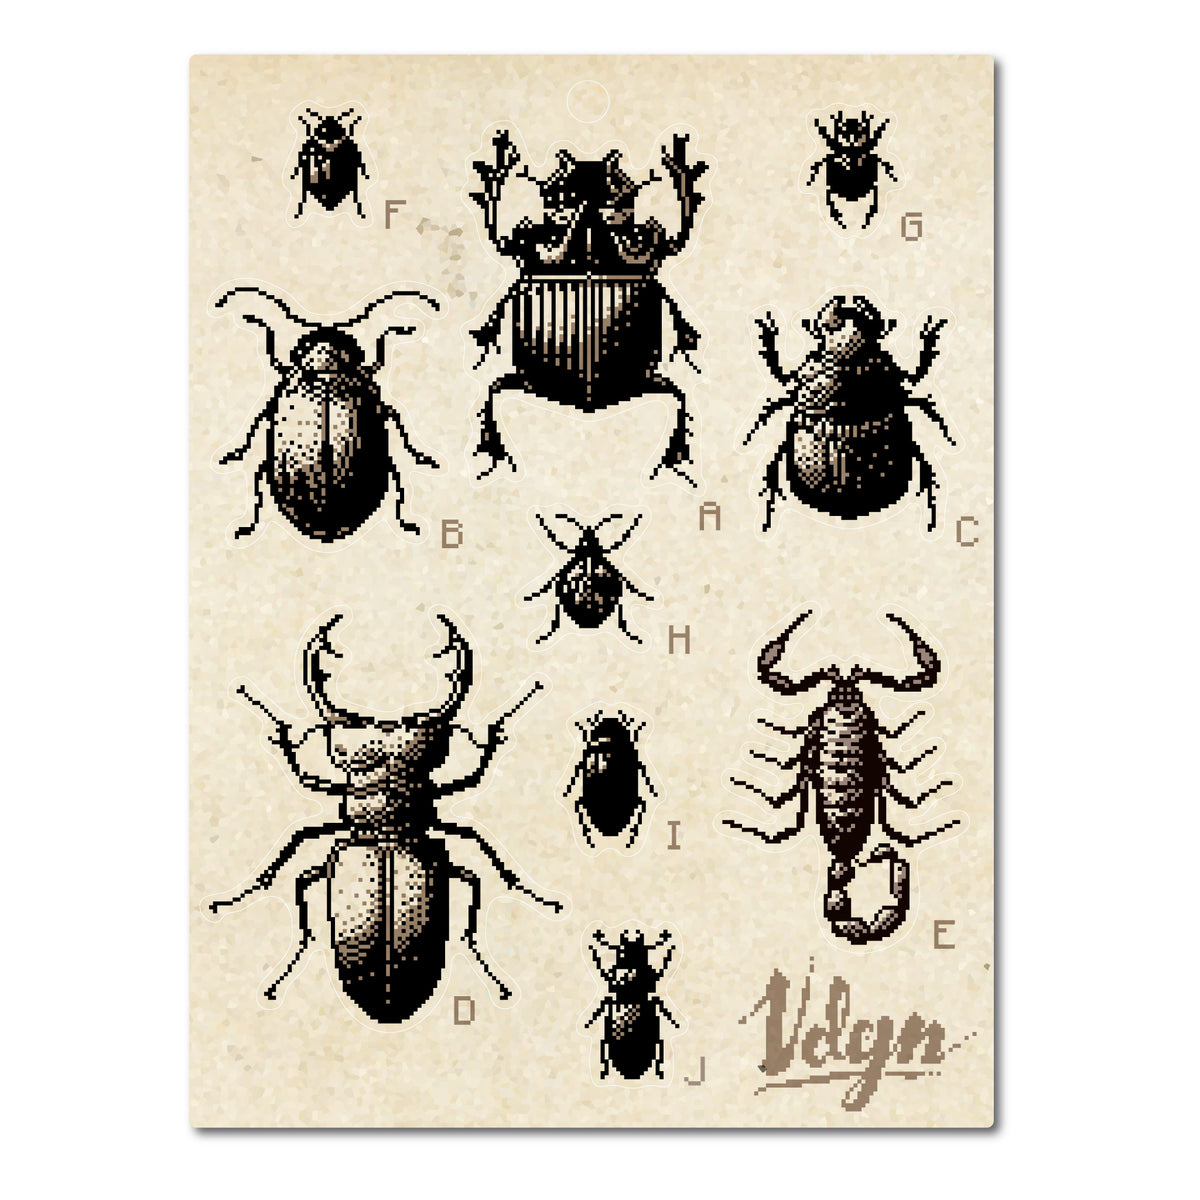 8 Bit Beetles Sticker Sheet